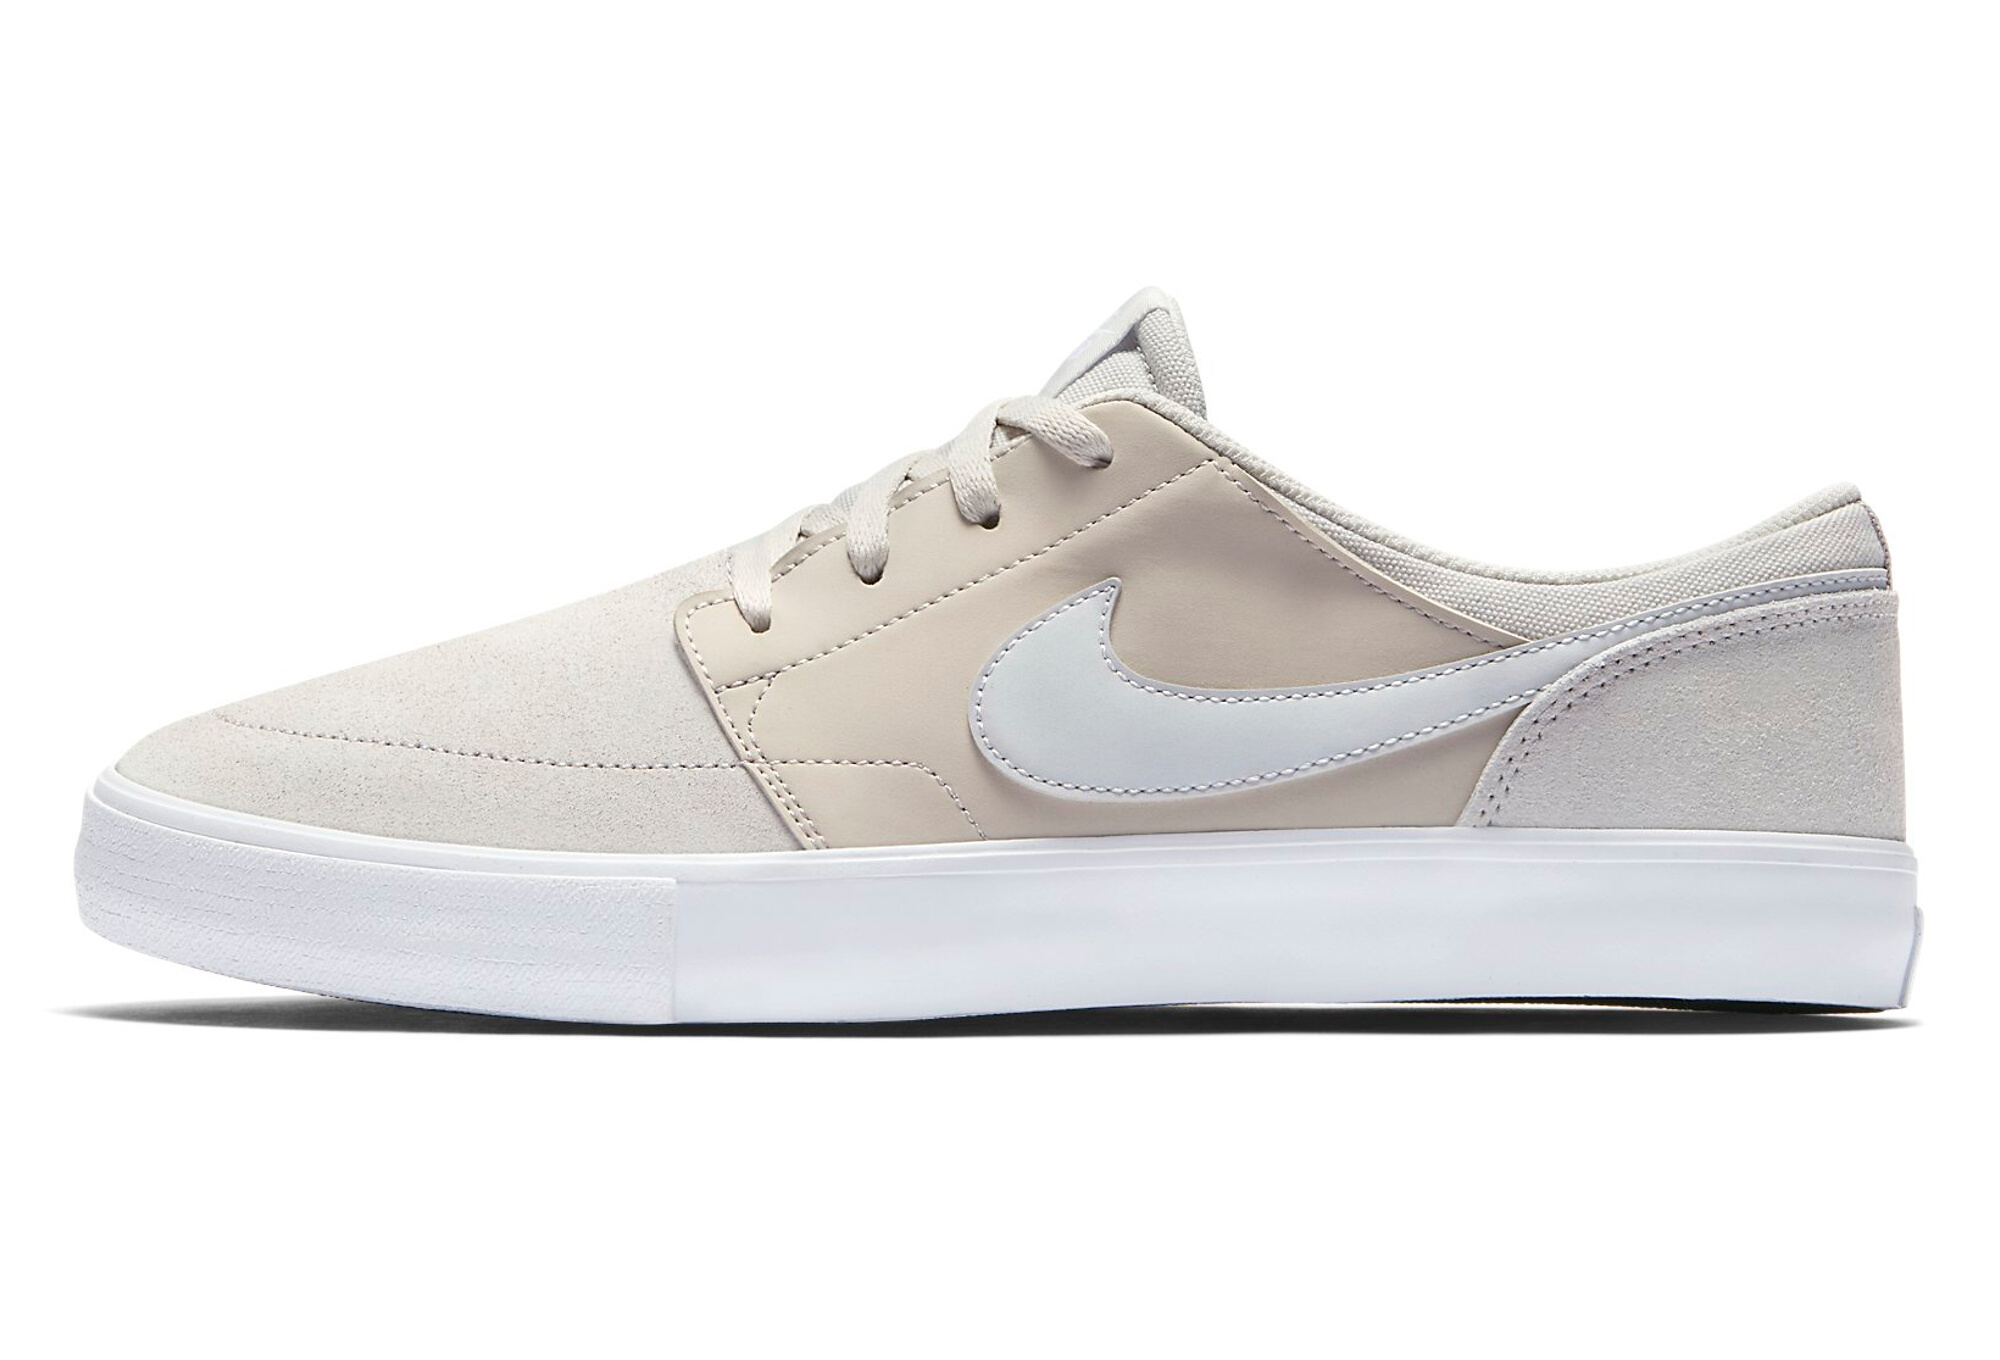 nike sb solarsoft portmore ii shoes beige white. Black Bedroom Furniture Sets. Home Design Ideas